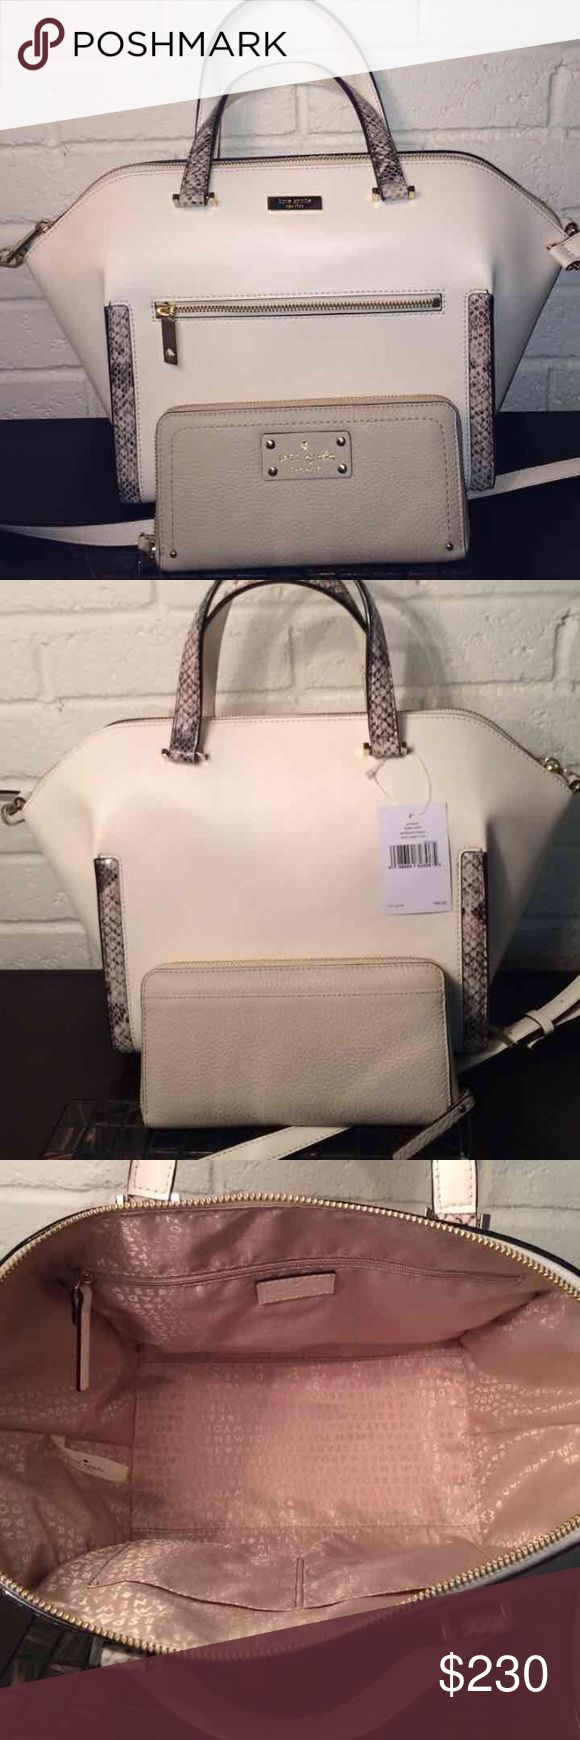 Kate spade Susannah satchel tote set PLEASE SHARE LISTINGS, I WILL RETURN FAVOR..BETTER PRICE on 🅿️🅿️or Ⓜercari!!!!️Bags are 100% authentic and brand new with tags guaranteed!! Kate spade Susannah leather set. Stored in pet free and smoke free home. Serious buyers only please and only comment if it's about purchasing. I will not respond to lowball offers.  customers know my background. Thank you   Measurements medium kate spade Bags